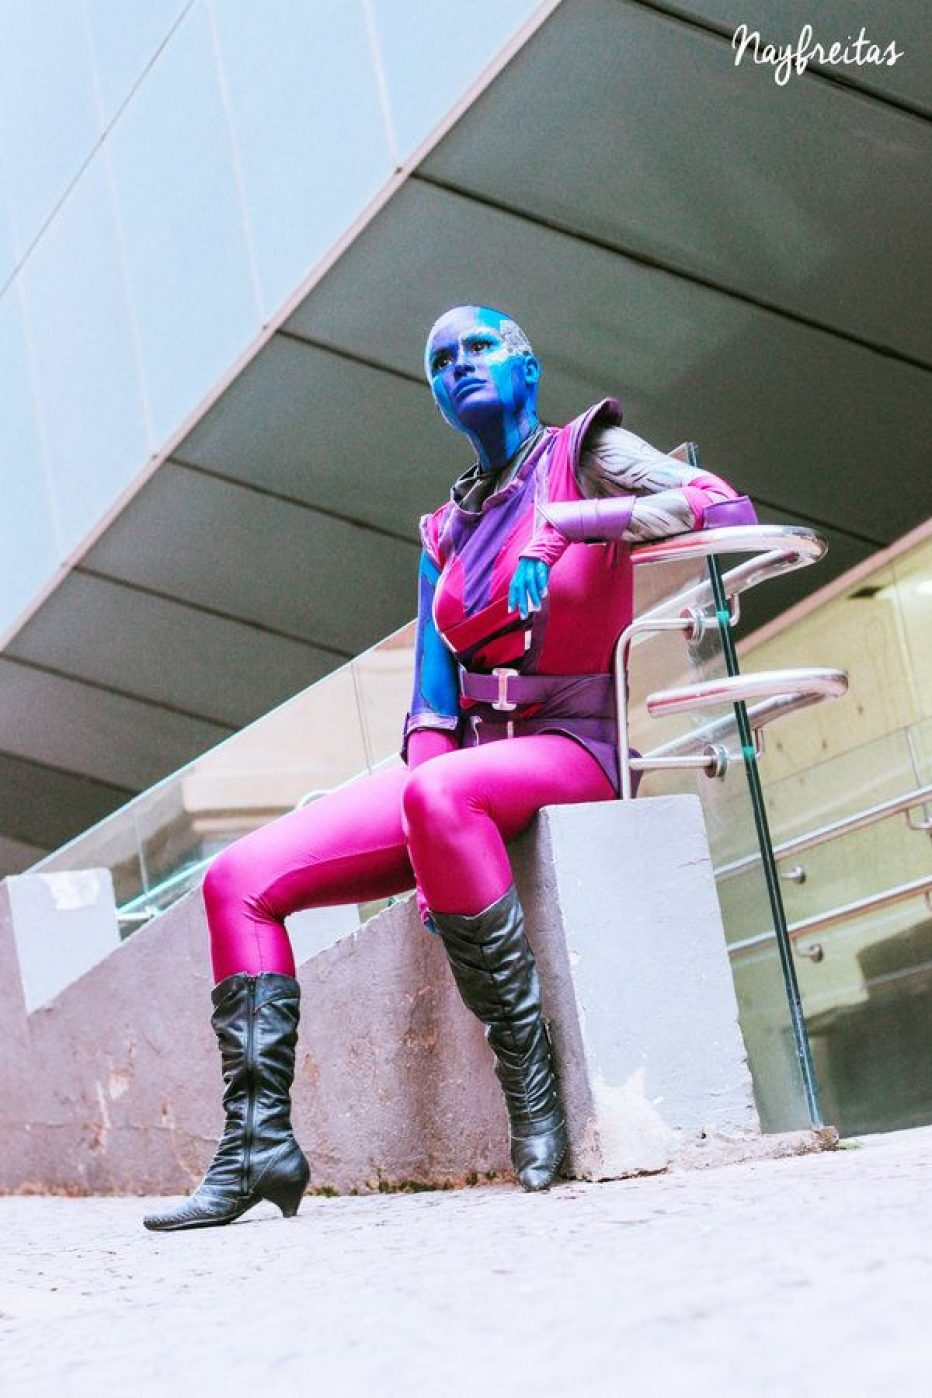 Guardians-of-the-Galaxy-Nebula-Cosplay-Gamers-Heroes-3.jpg